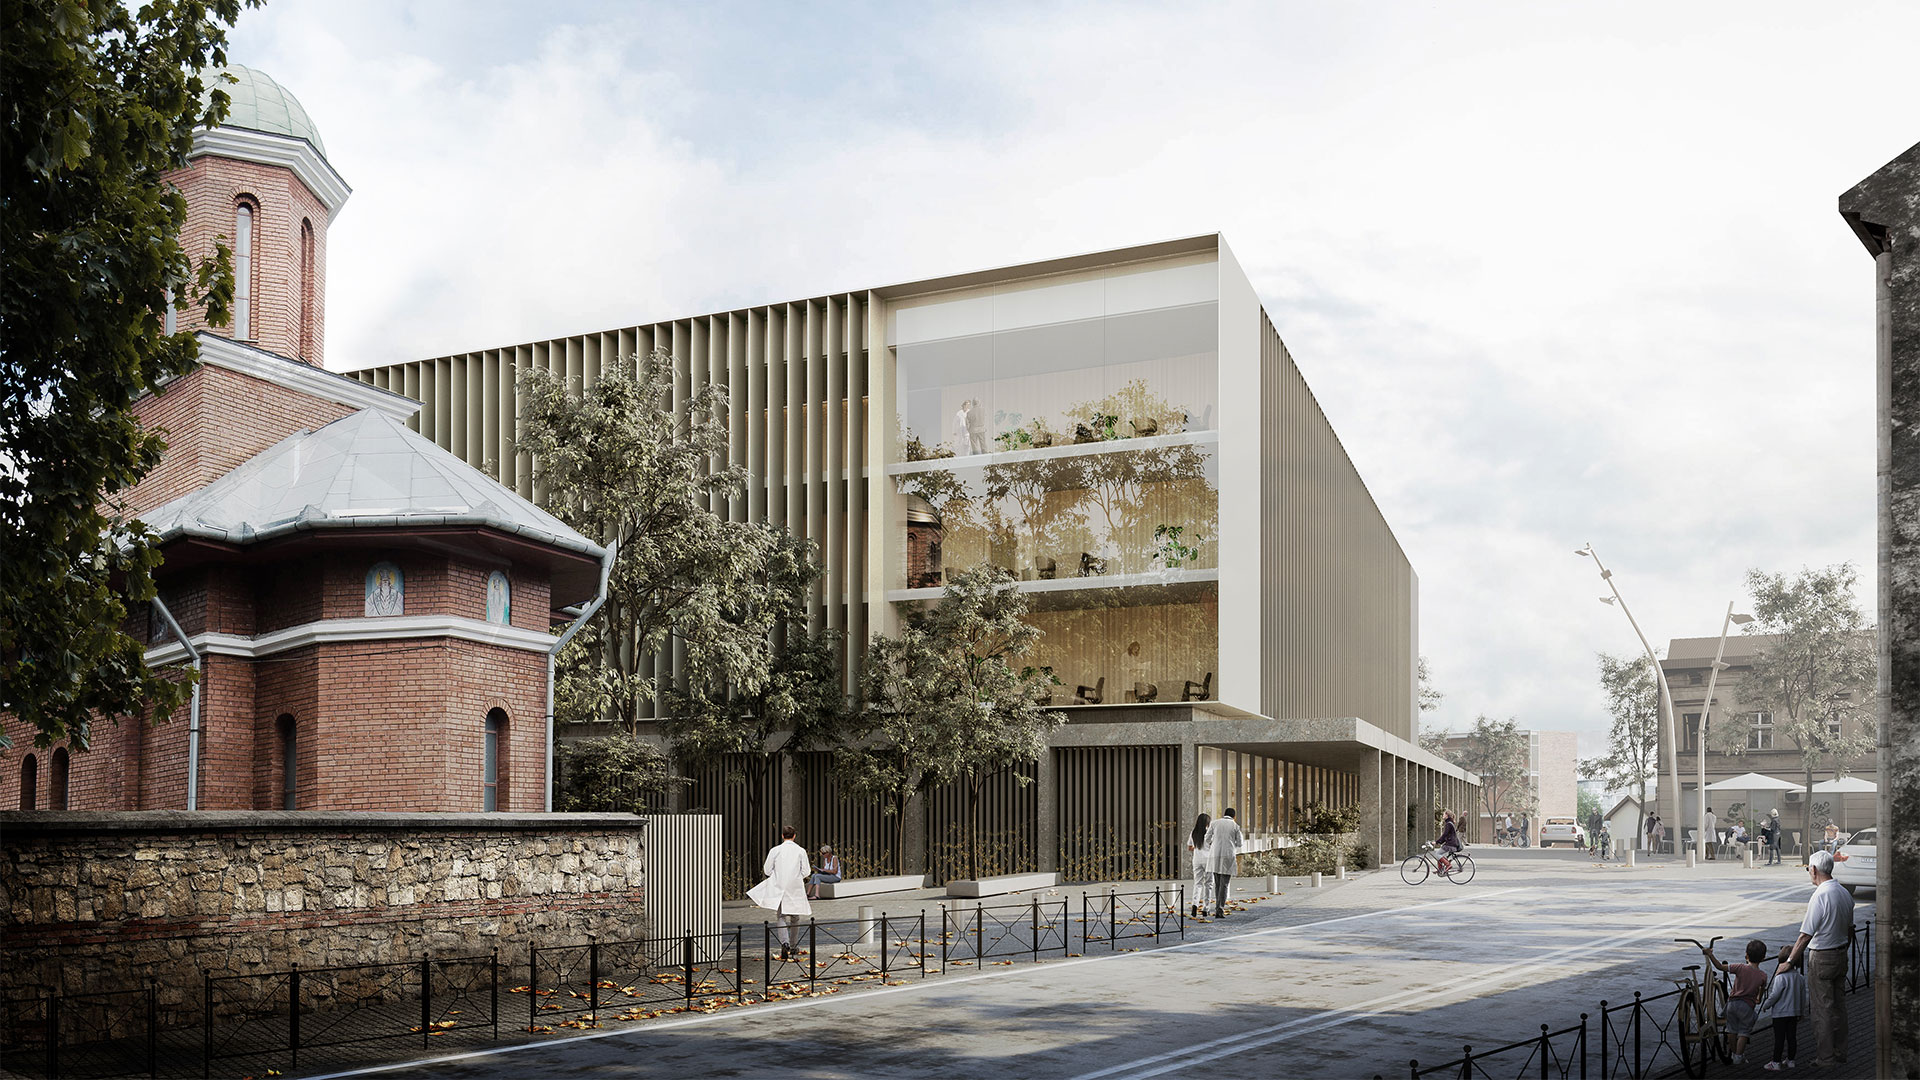 Cluj-Napoca Comprehensive Transplant Centre, Signed design contract, 2020